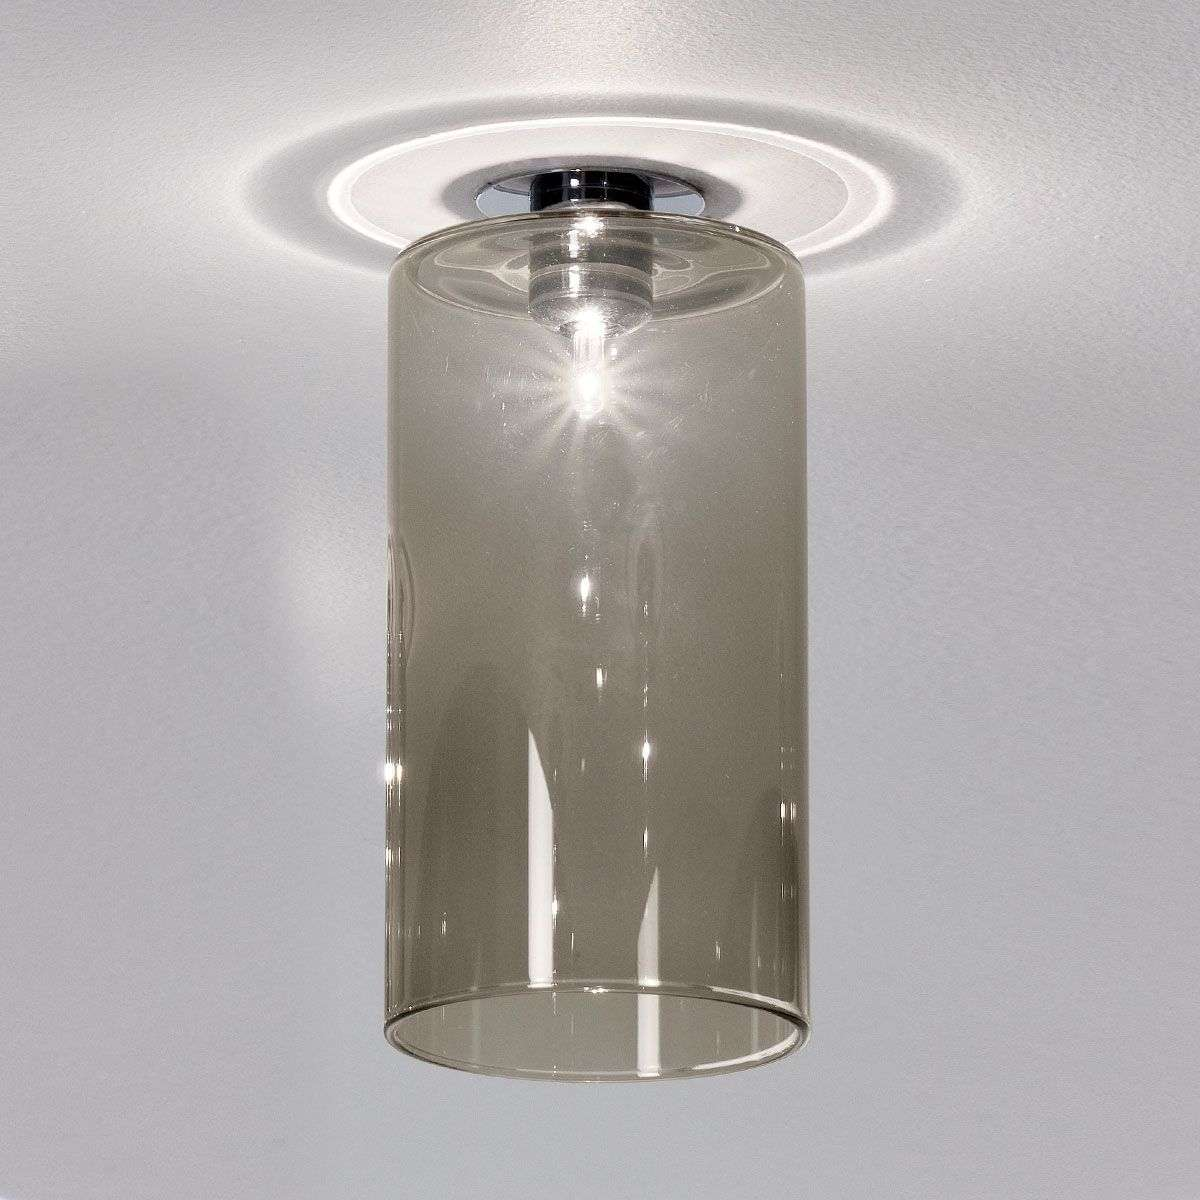 Spillray installed light with grey glass shade-1088050-31